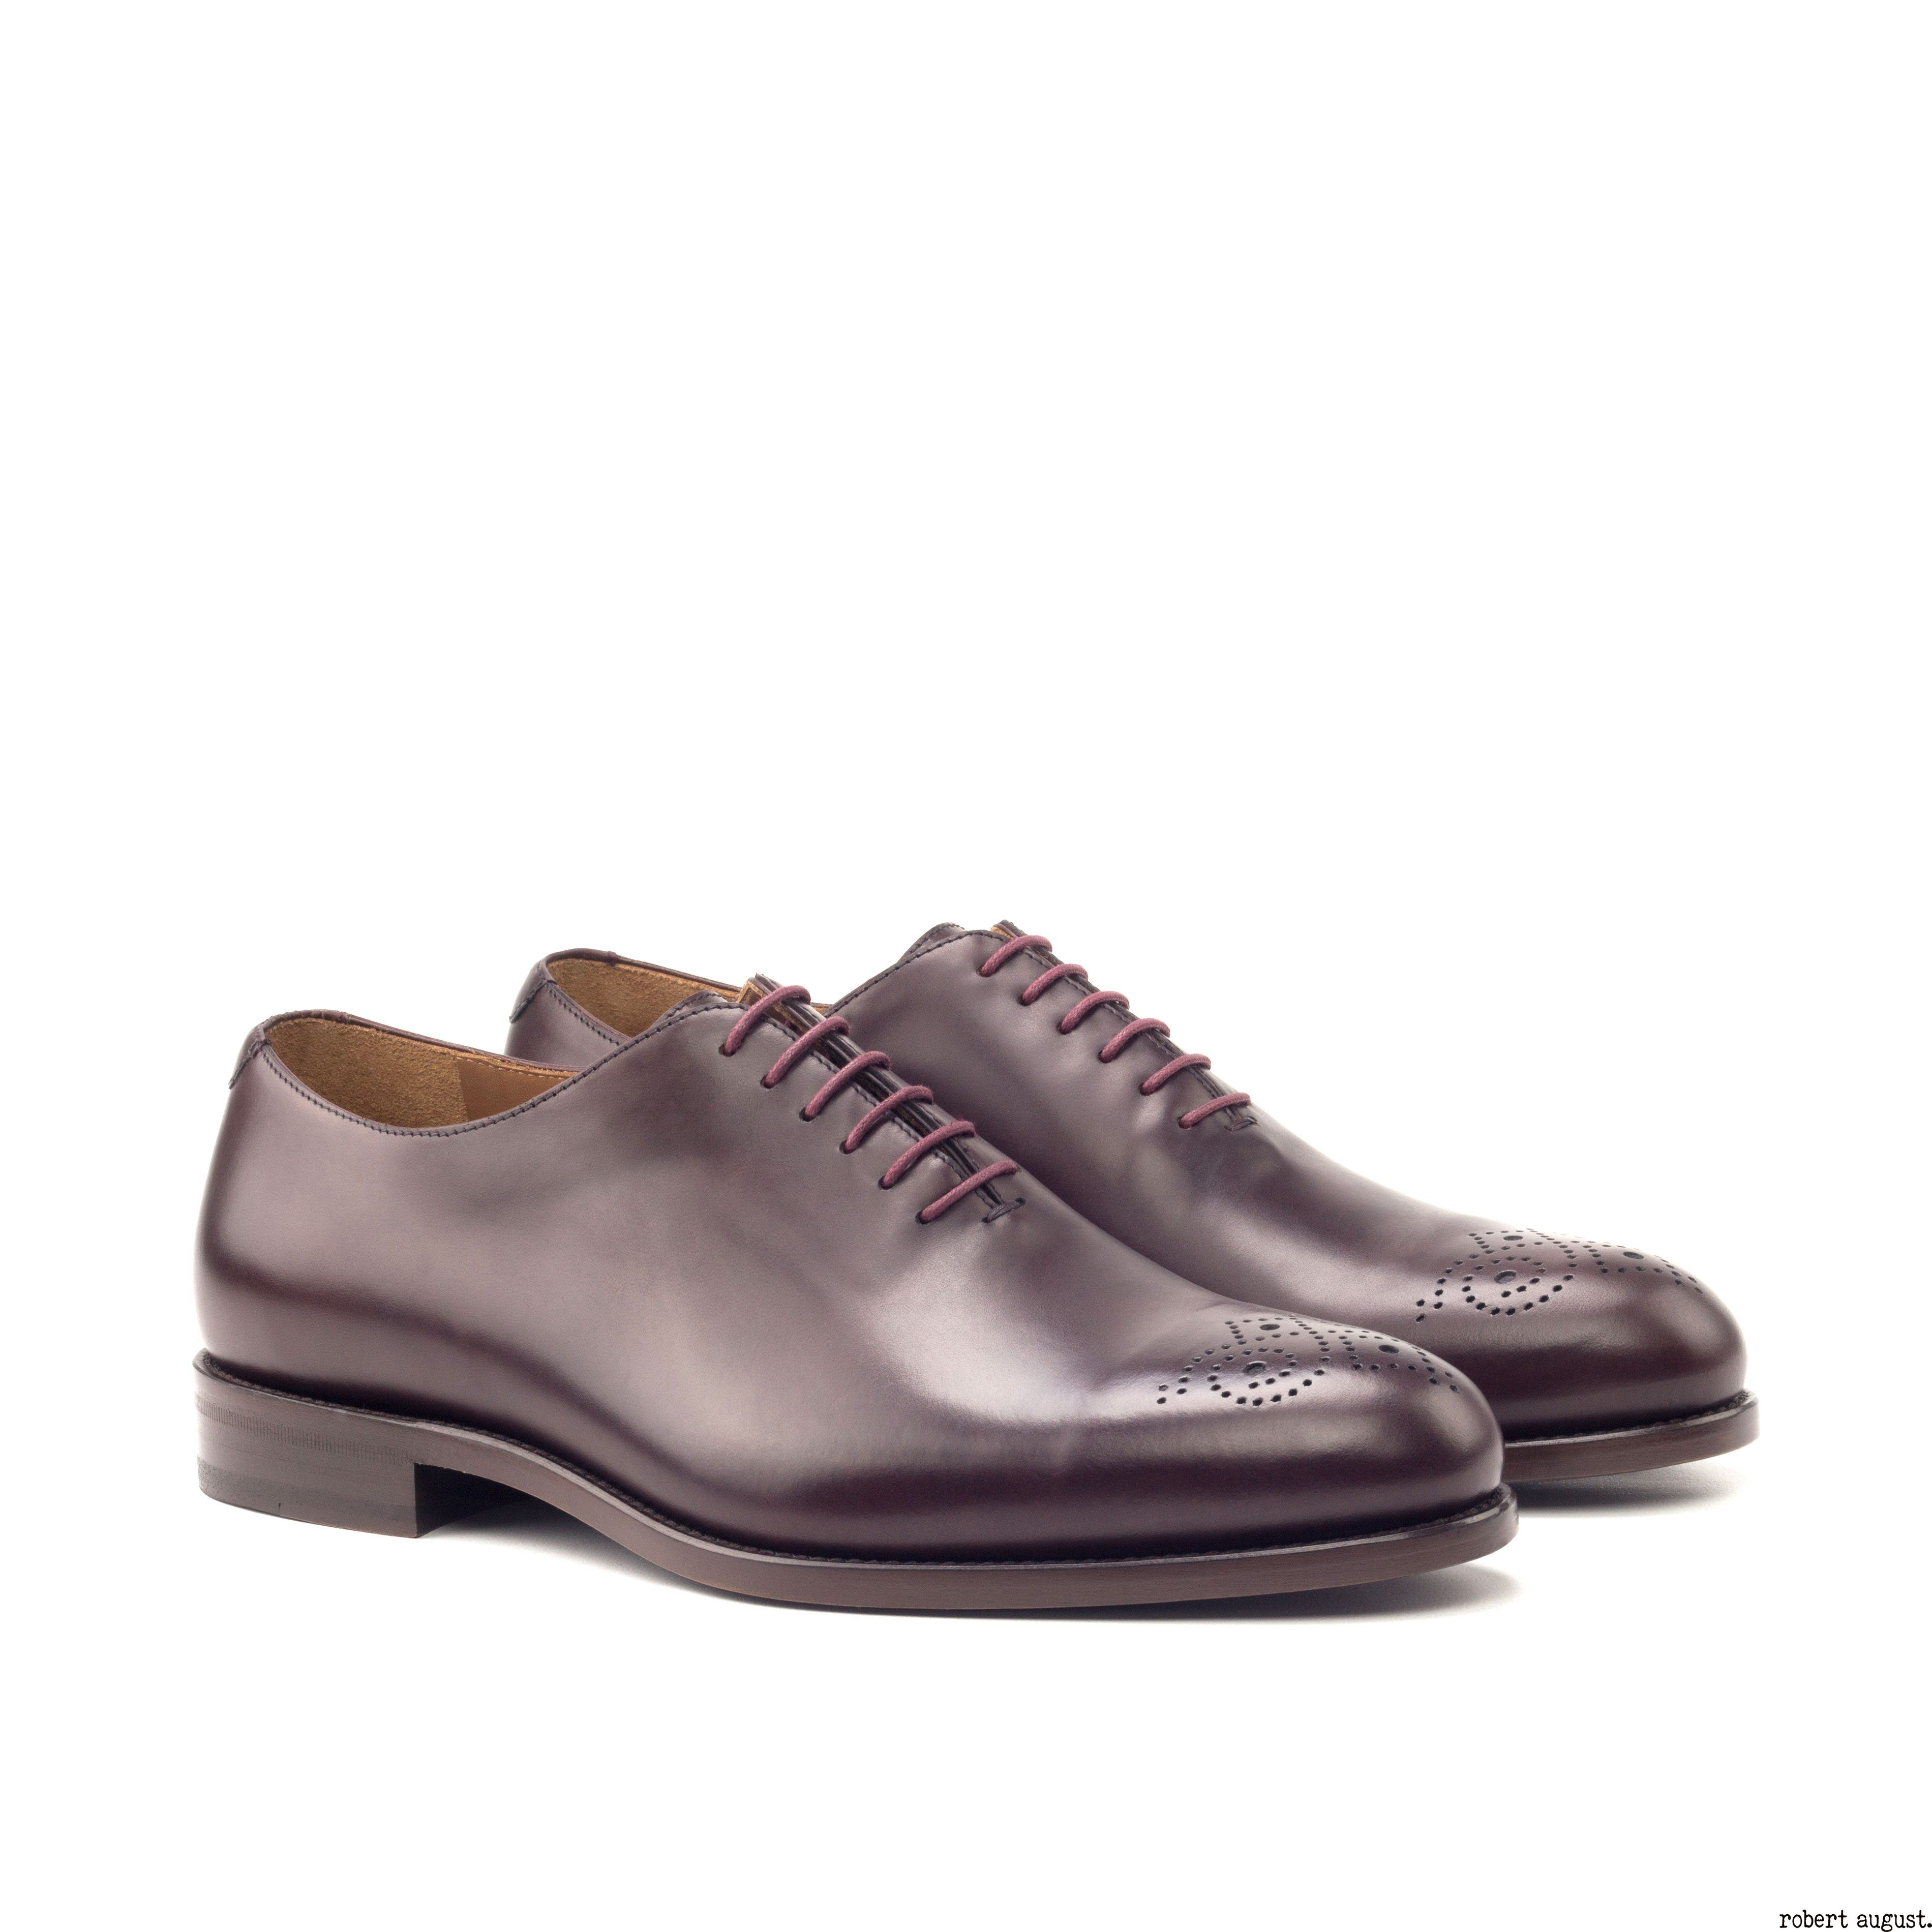 33d6cb46ebcf1 Handcrafted Custom Made Shoes From Robert August. Create your own custom  designed shoes.#shoes #shoesoftheday #dapper #menswear #mensfashion ...